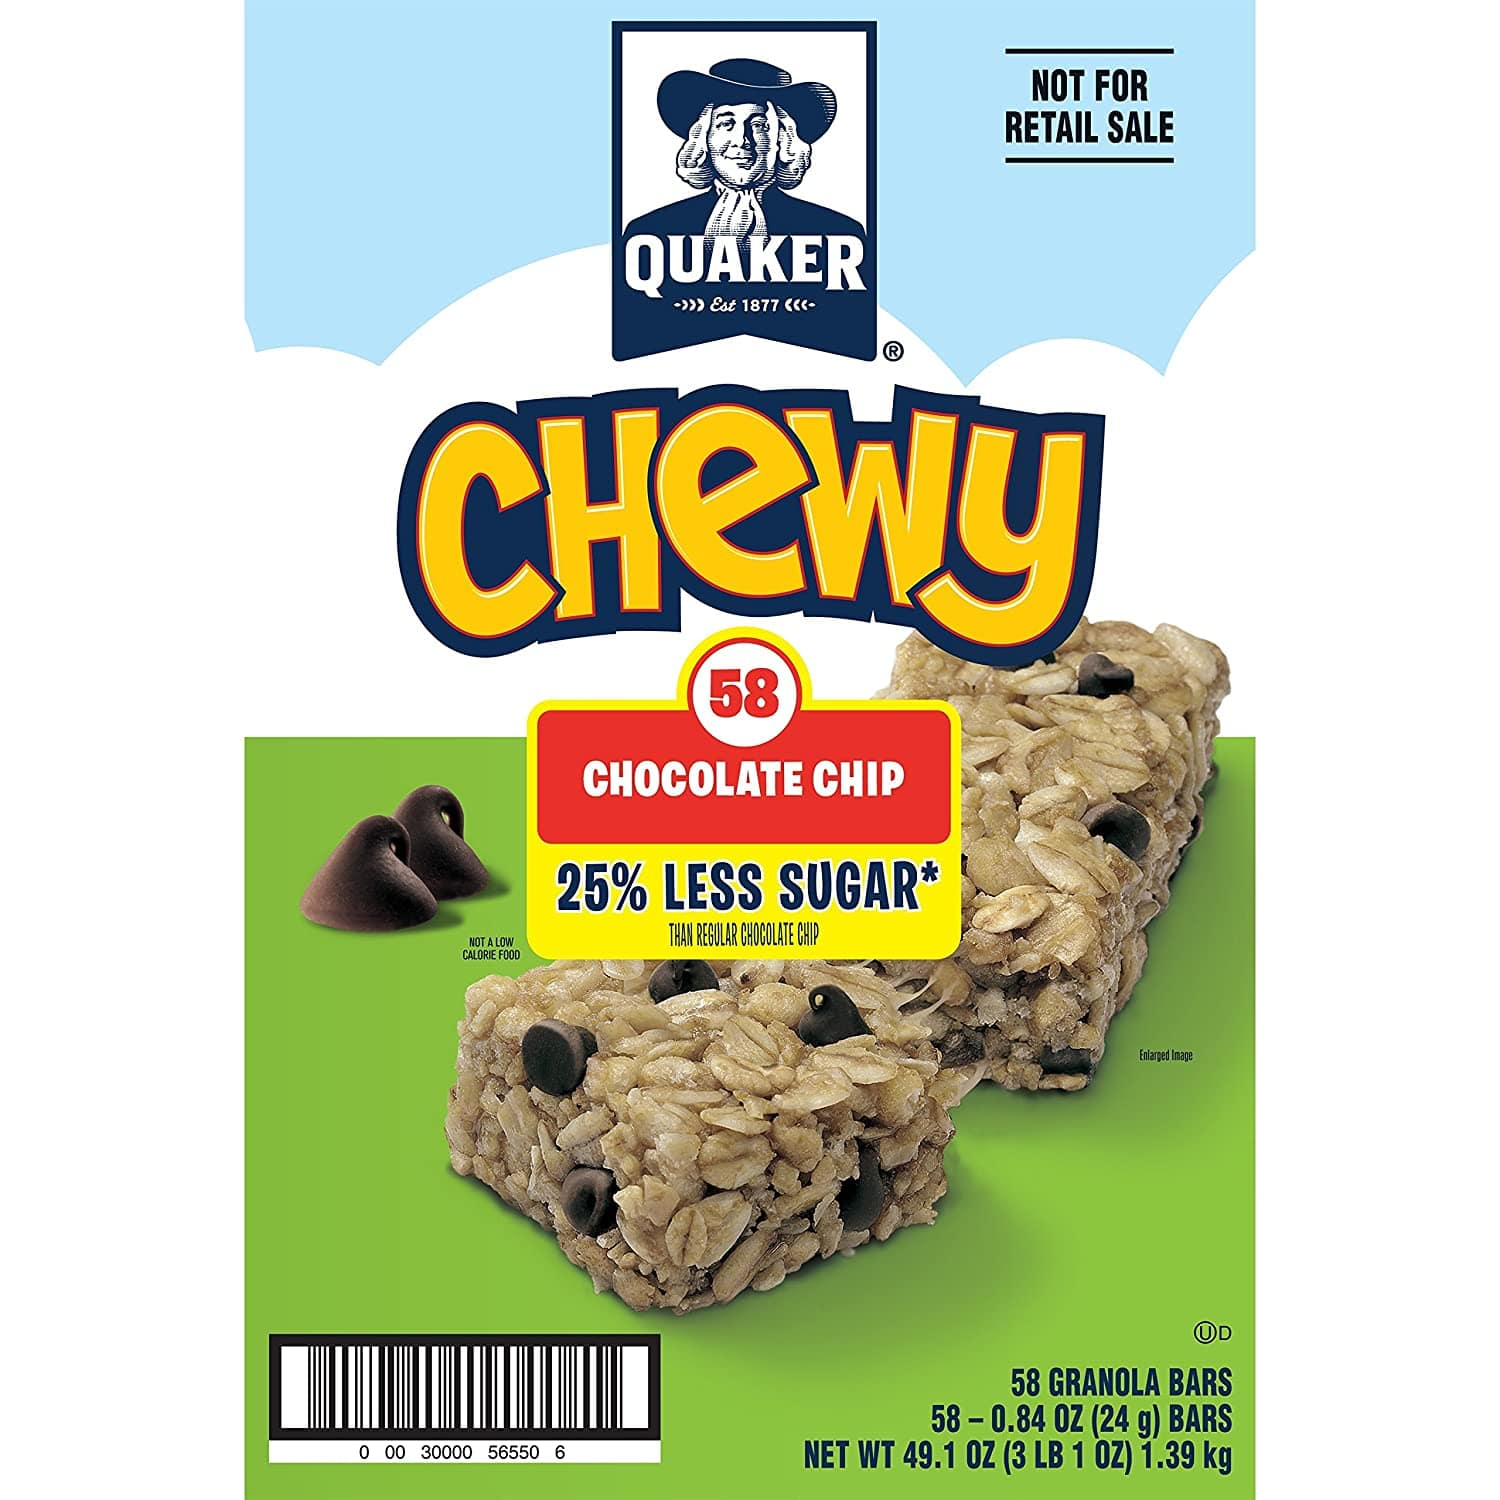 Quaker Chewy Granola Bars, 25% Less Sugar, Chocolate Chip (58 Pack) $4.82